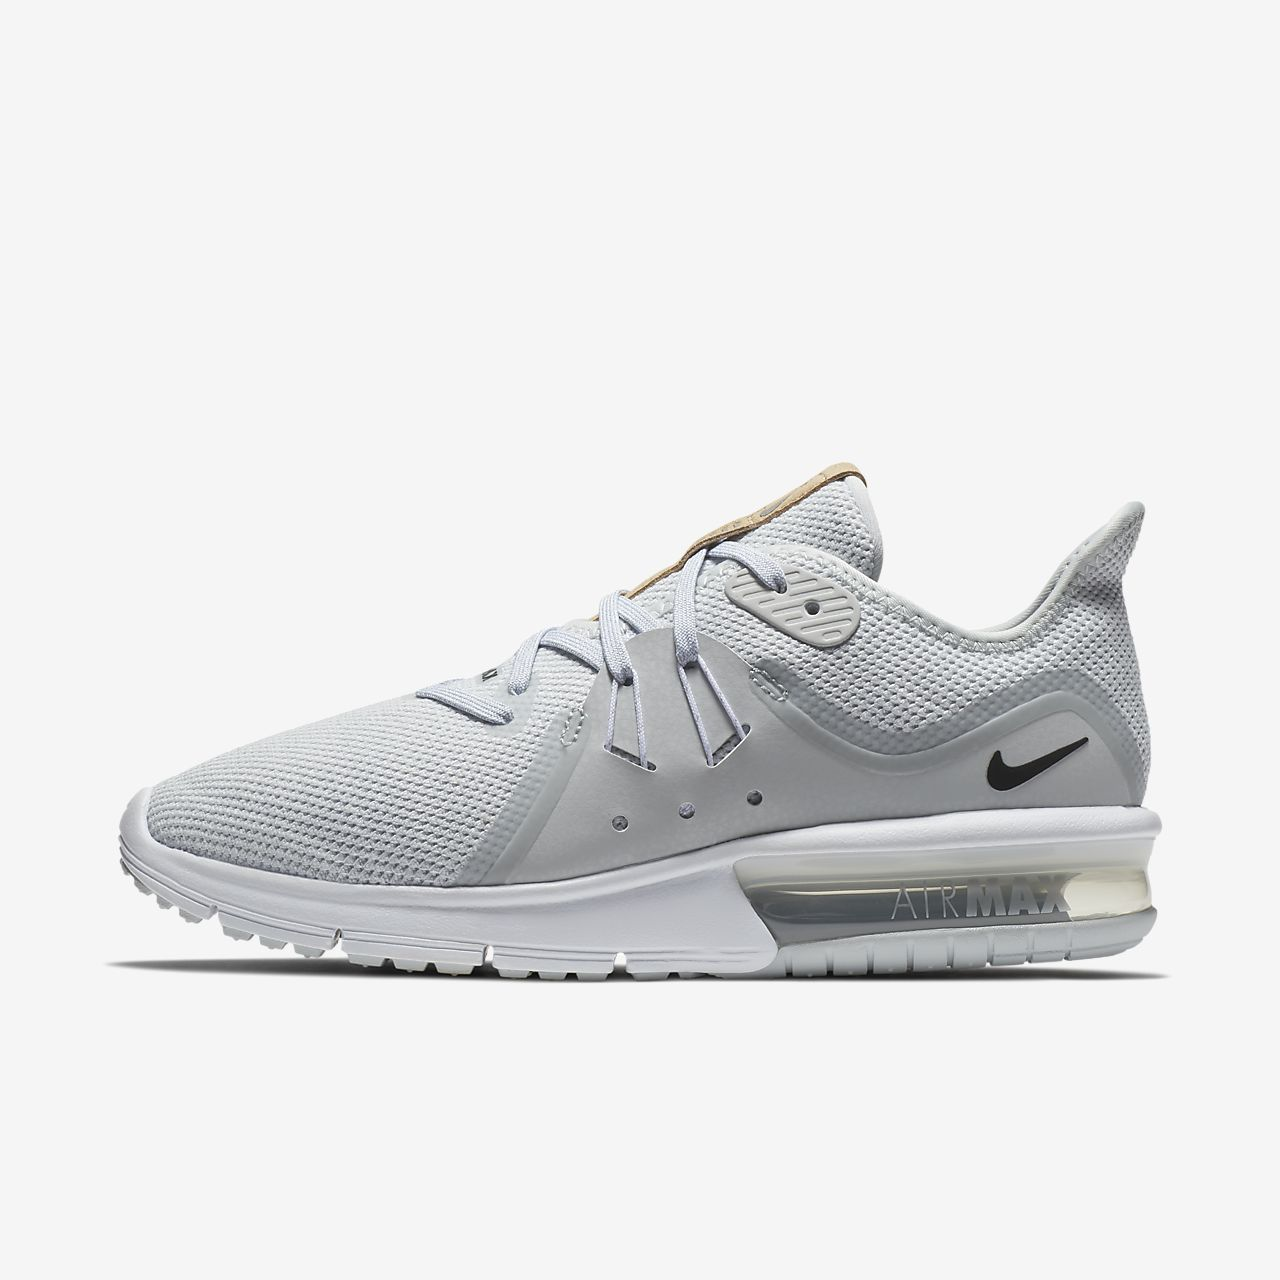 89548ab846 Nike Air Max Sequent 3 Women's Shoe. Nike.com